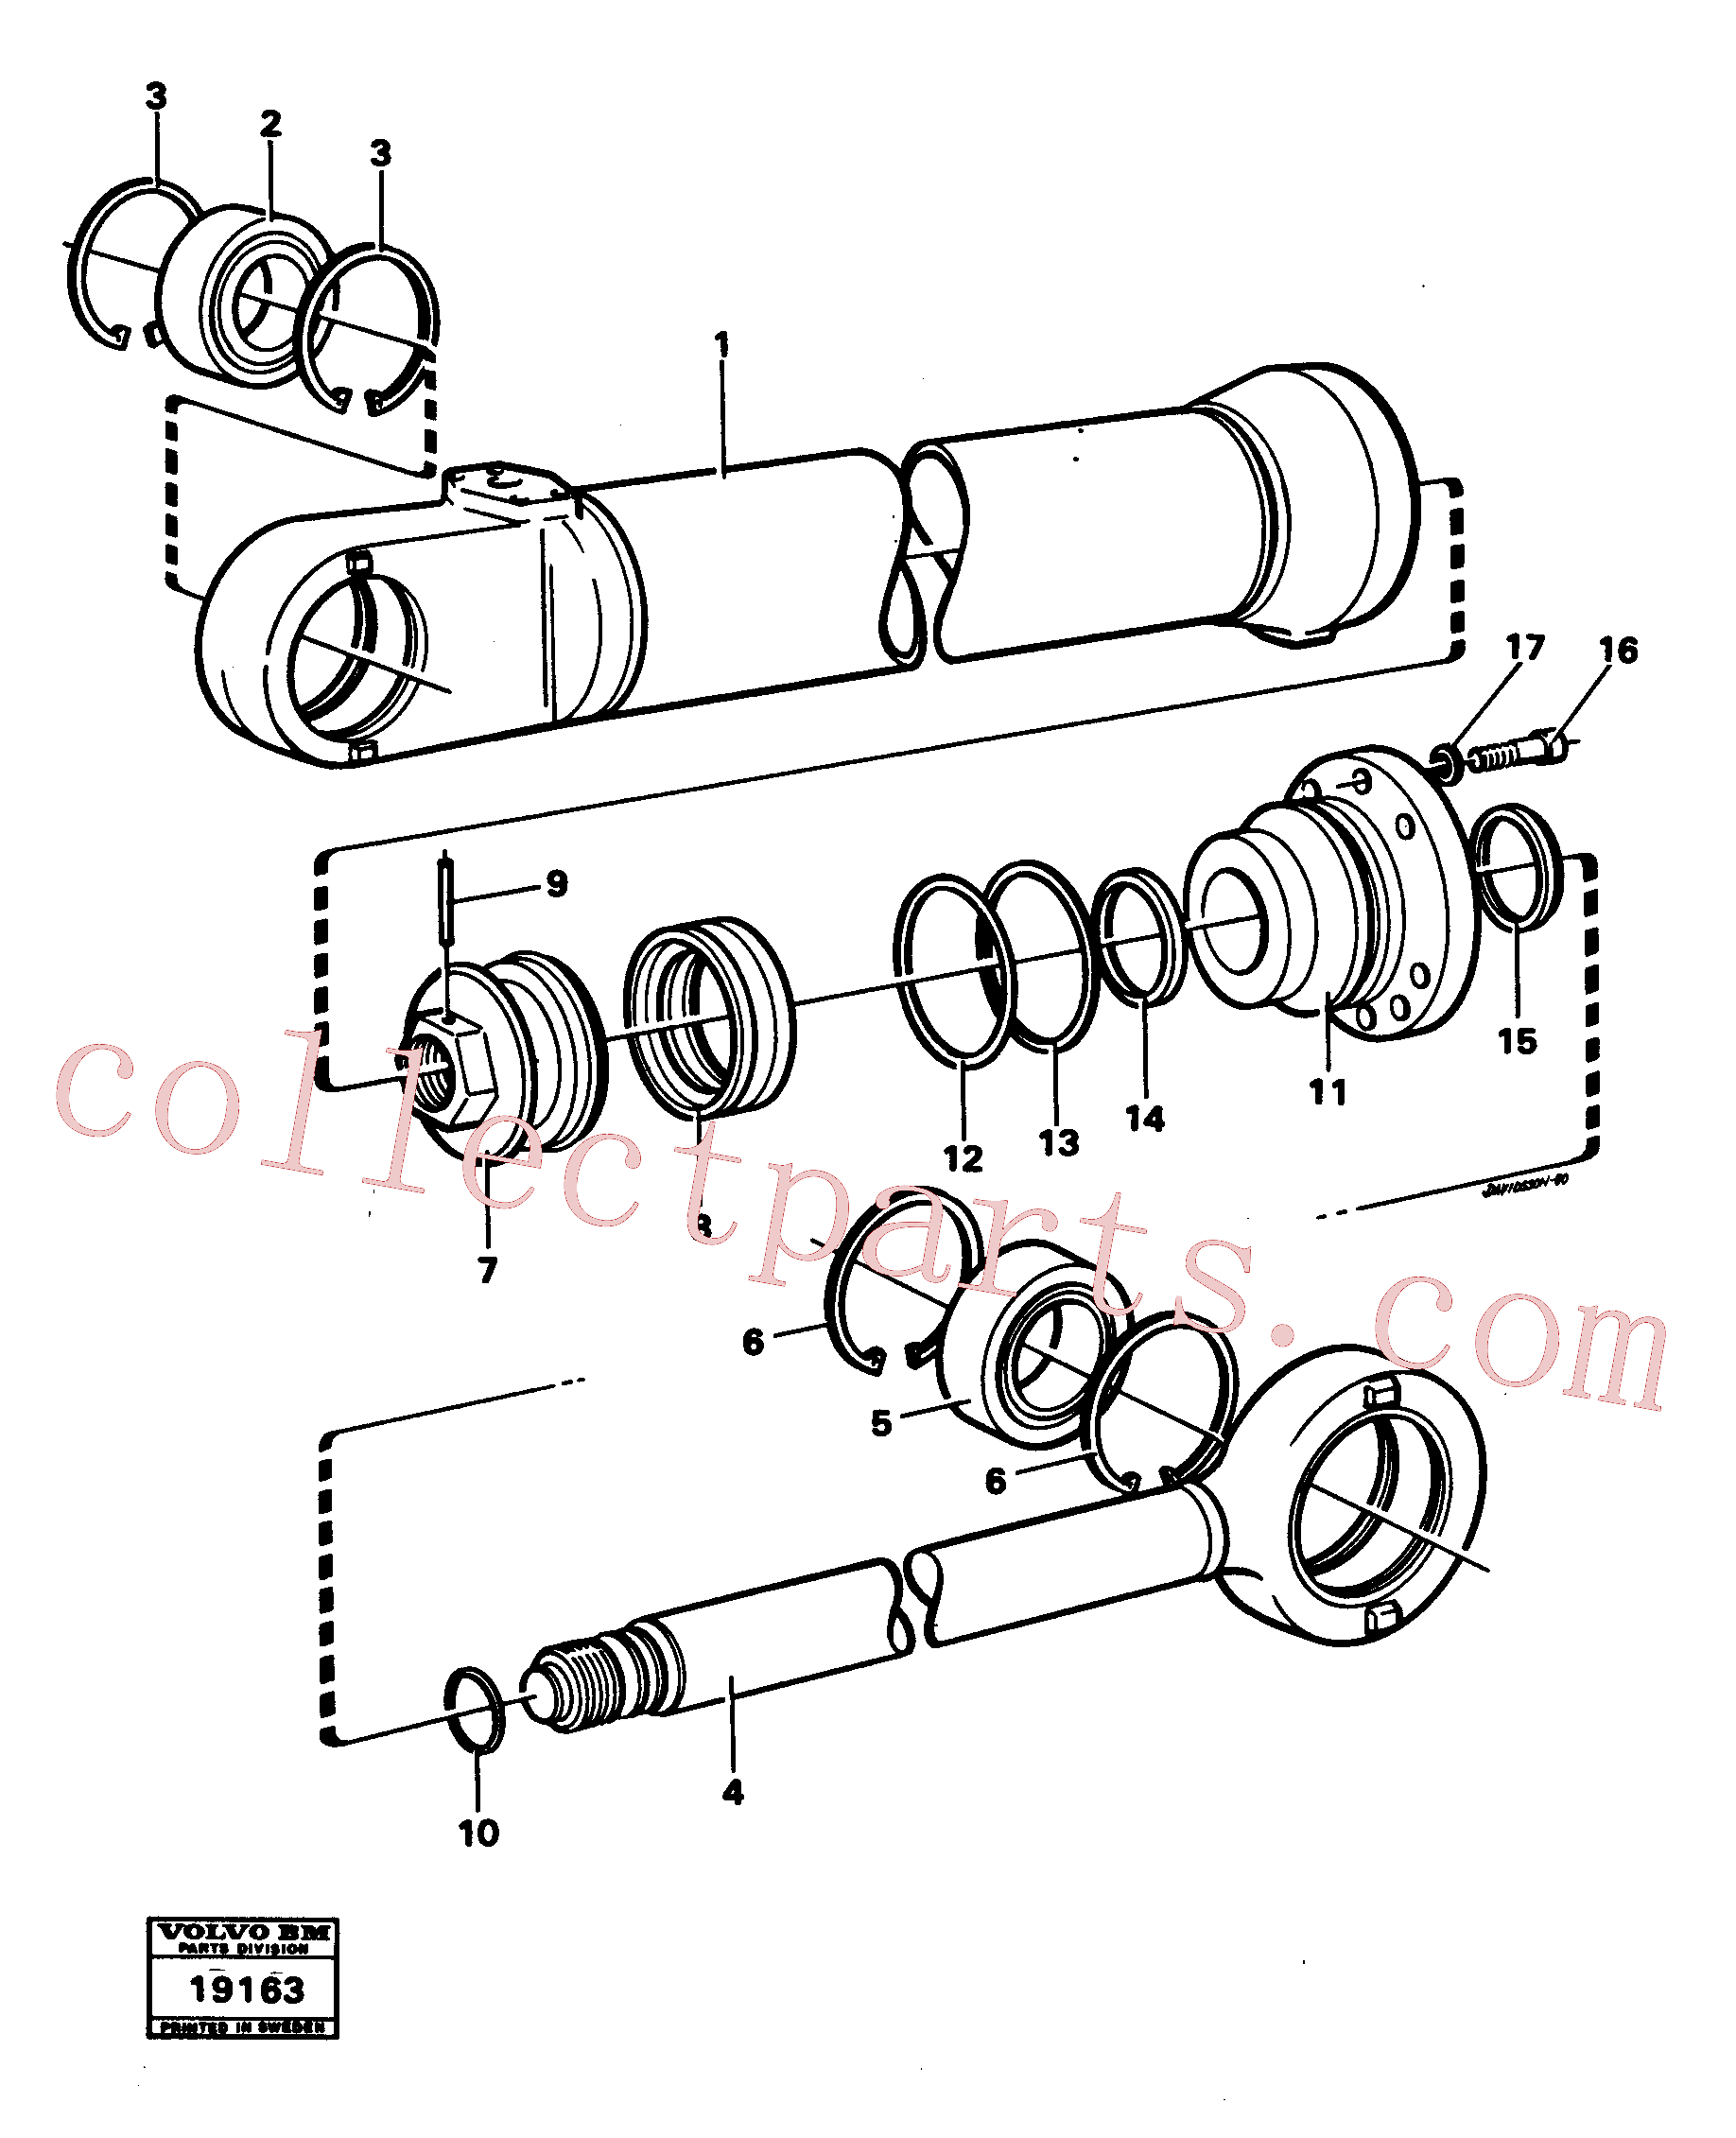 VOE11005198 for Volvo Hydraulic cylinder lifting(19163 assembly)